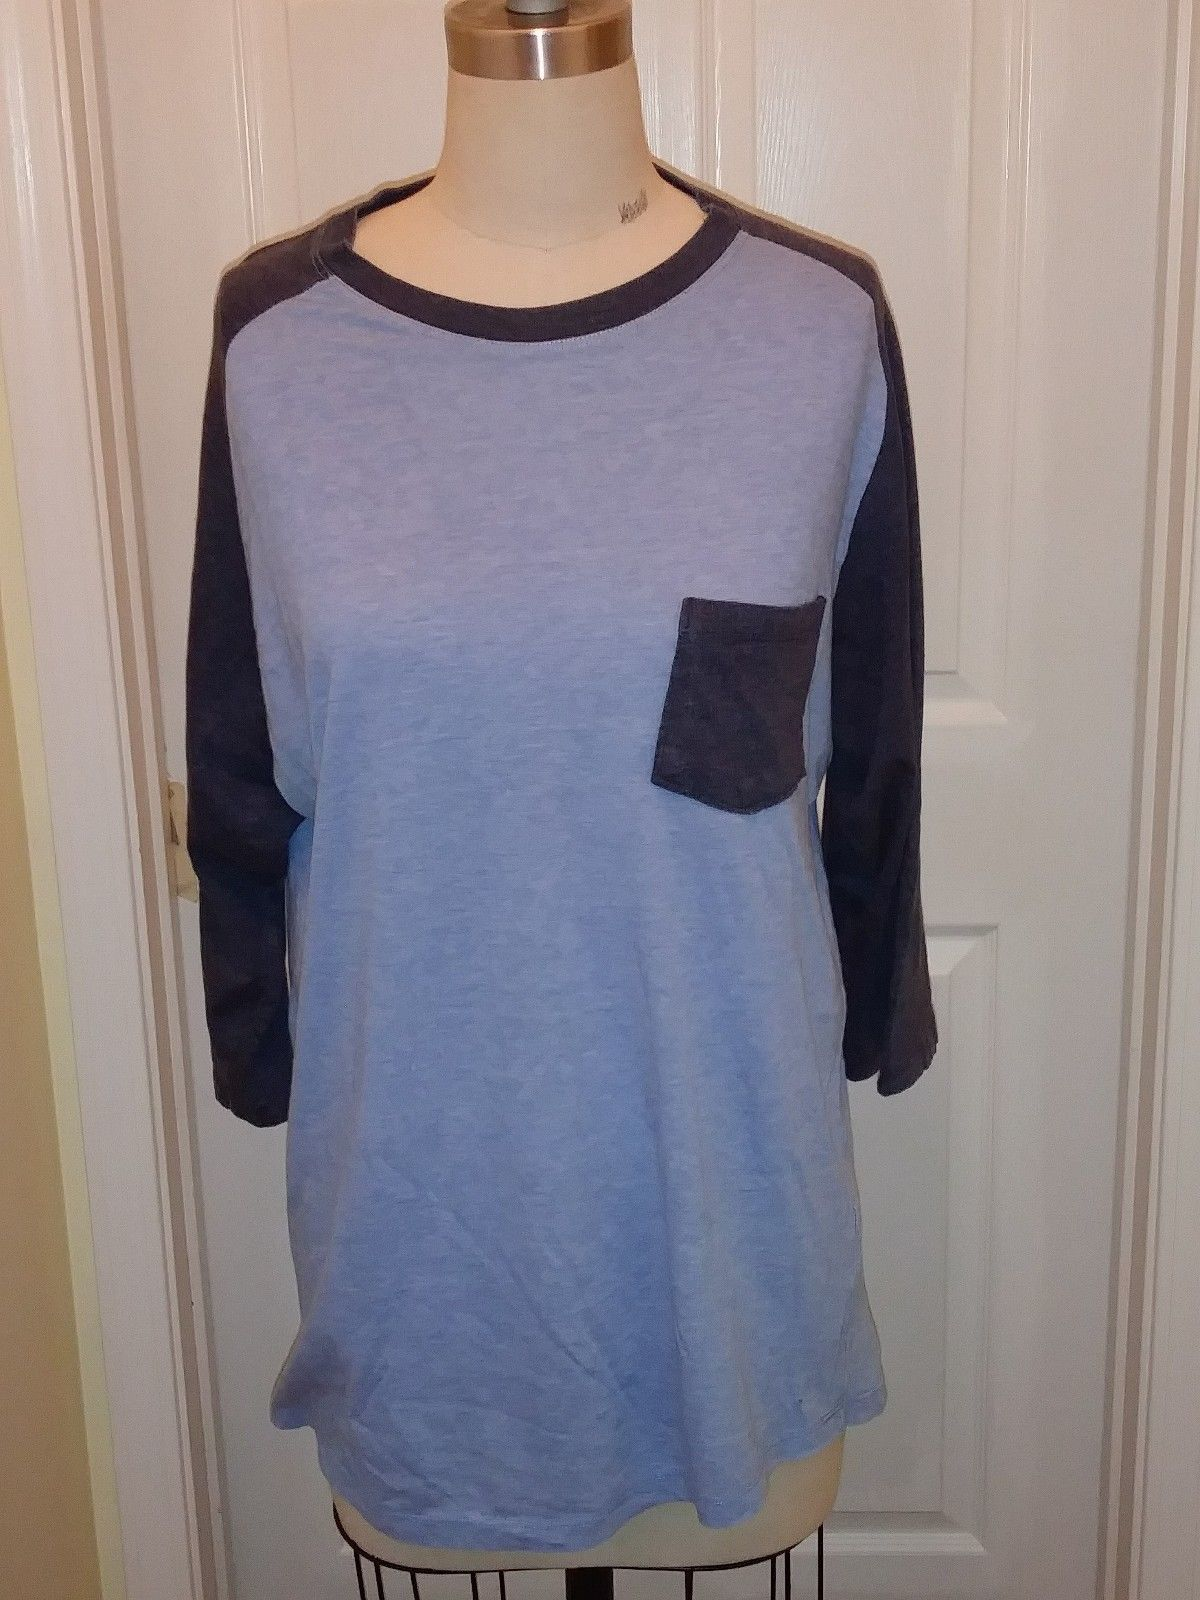 Womens Retro Fit light/navy blue baseball style top size XL